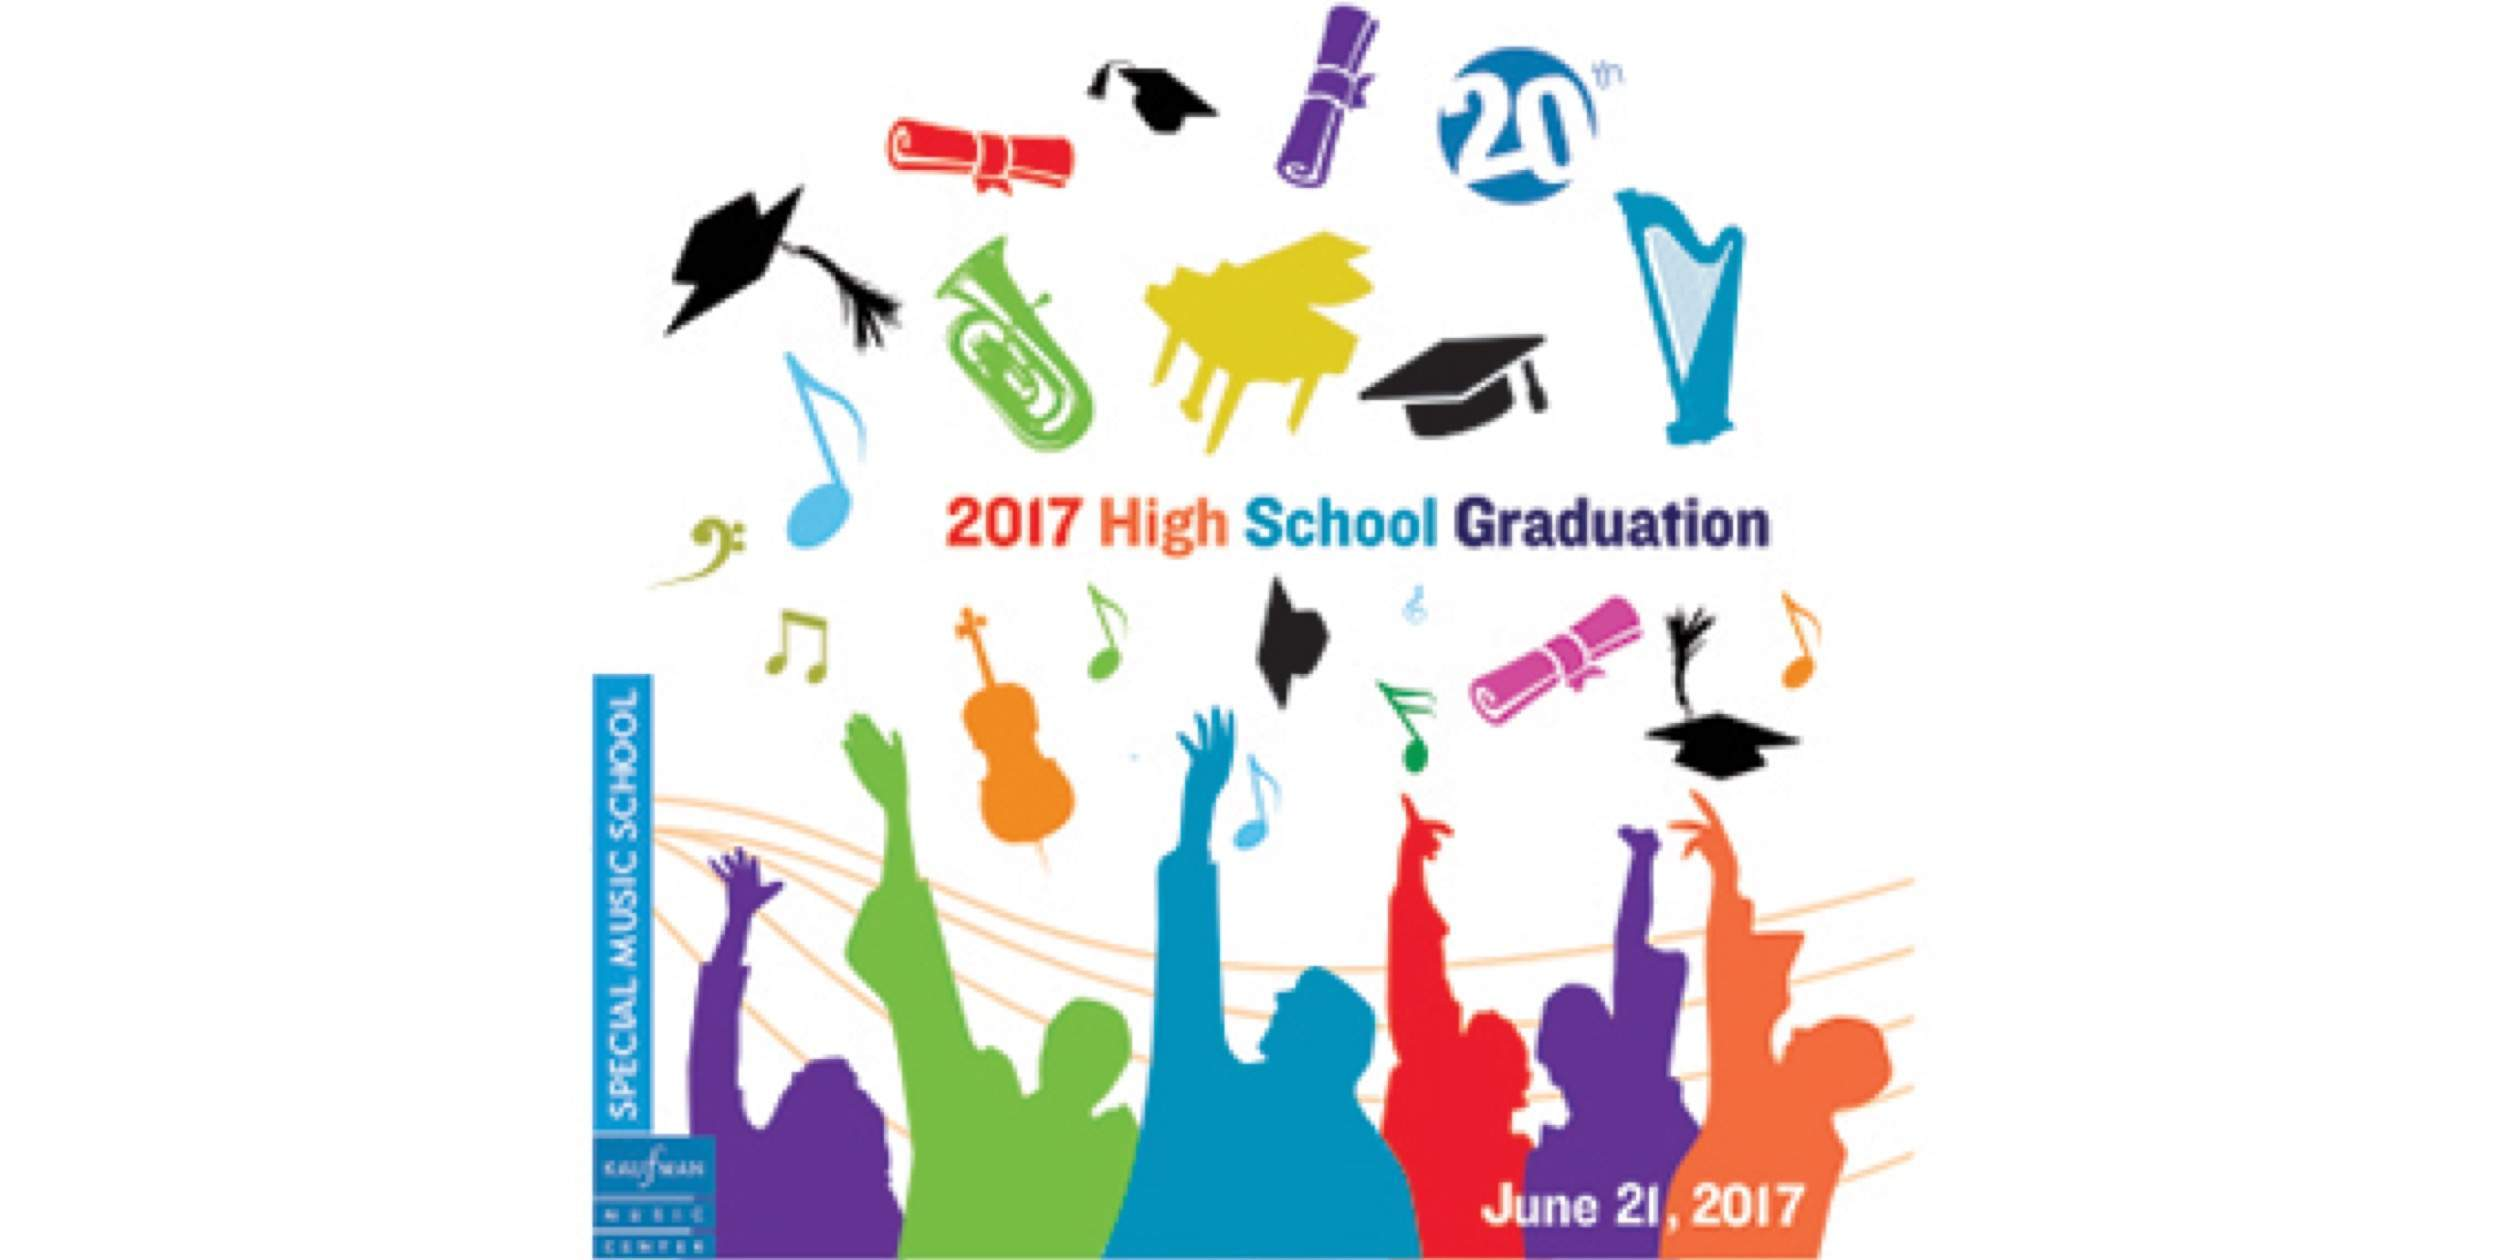 Congratulations to SMS High School's Class of 2017!